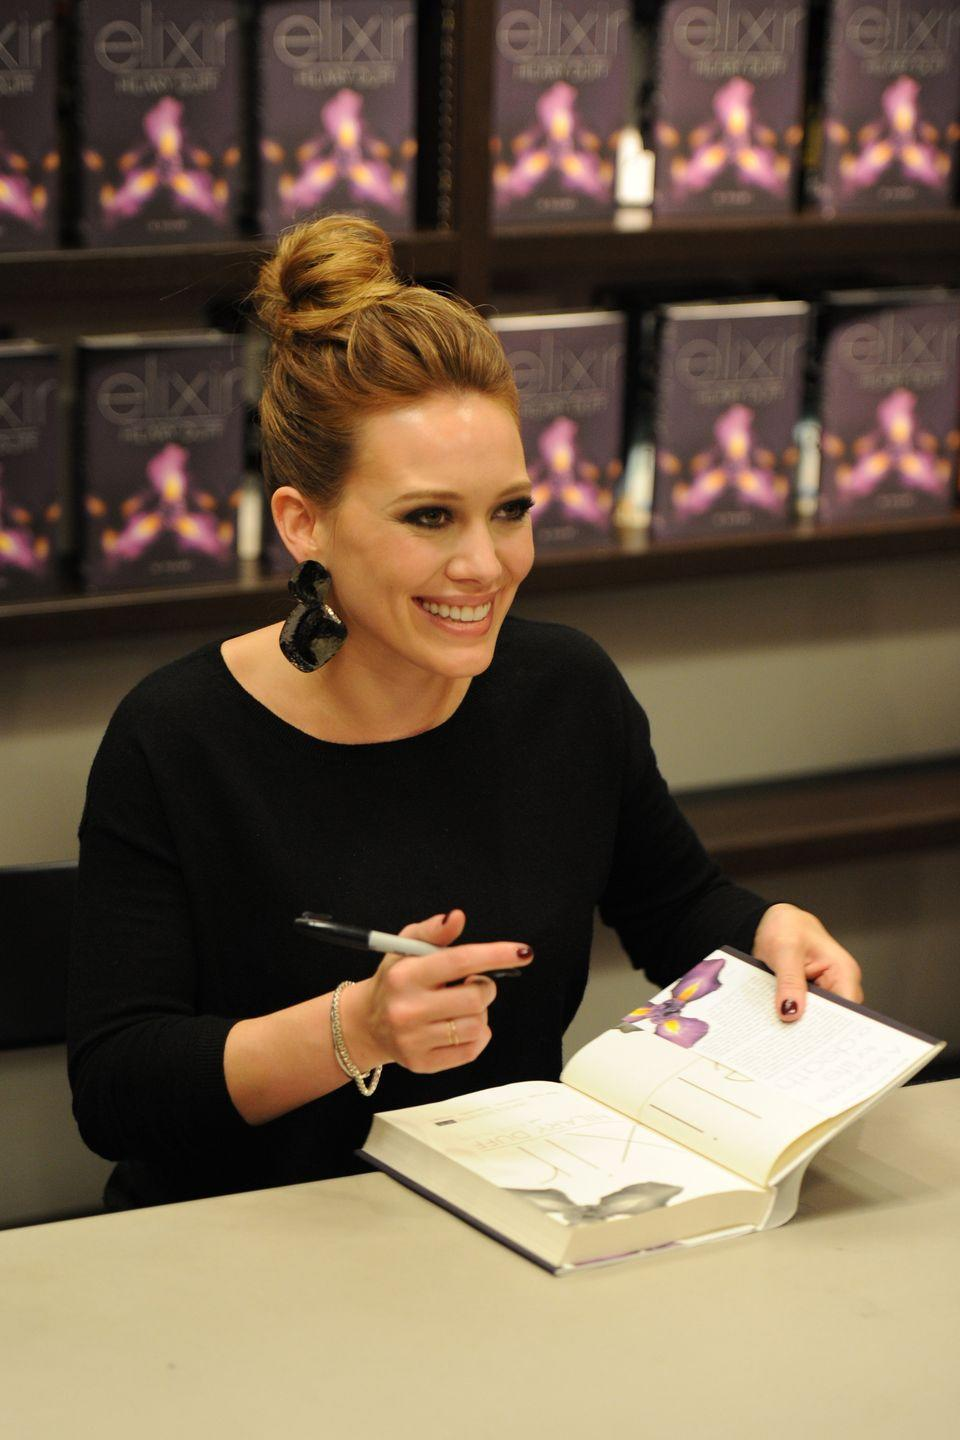 """<p>While Hilary Duff may play a powerhouse editor on <em>Younger</em>, the actress and singer has also proven herself capable on the other side of the table as well. The <em>Lizzie McGuire</em> star released her first young adult novel, <em>Elixir</em>, in October 2010. </p><p>The book centers on Clea Raymond, a talented photojournalist whose life starts to unravel after her father's disappearance and the appearance of a mysterious stranger, Sage, who might be the only one who can help her. </p><p>""""I've always loved the escape of a great book, especially one that features a strong, inspiring female character you feel you really understand,"""" Hilary told <em><a href=""""https://ew.com/article/2010/03/09/hilary-duff-to-write-a-ya-series/"""" rel=""""nofollow noopener"""" target=""""_blank"""" data-ylk=""""slk:Entertainment Weekly"""" class=""""link rapid-noclick-resp"""">Entertainment Weekly</a></em> at the time of <em>Elixir</em>'s release. The story of Clea and Sage continues in two more books in the series, <em>Devoted</em> and <em>True</em>.</p><p><a class=""""link rapid-noclick-resp"""" href=""""https://www.amazon.com/Elixir-Hilary-Duff/dp/1442408545?tag=syn-yahoo-20&ascsubtag=%5Bartid%7C2140.g.33987725%5Bsrc%7Cyahoo-us"""" rel=""""nofollow noopener"""" target=""""_blank"""" data-ylk=""""slk:Buy the Book"""">Buy the Book</a></p>"""